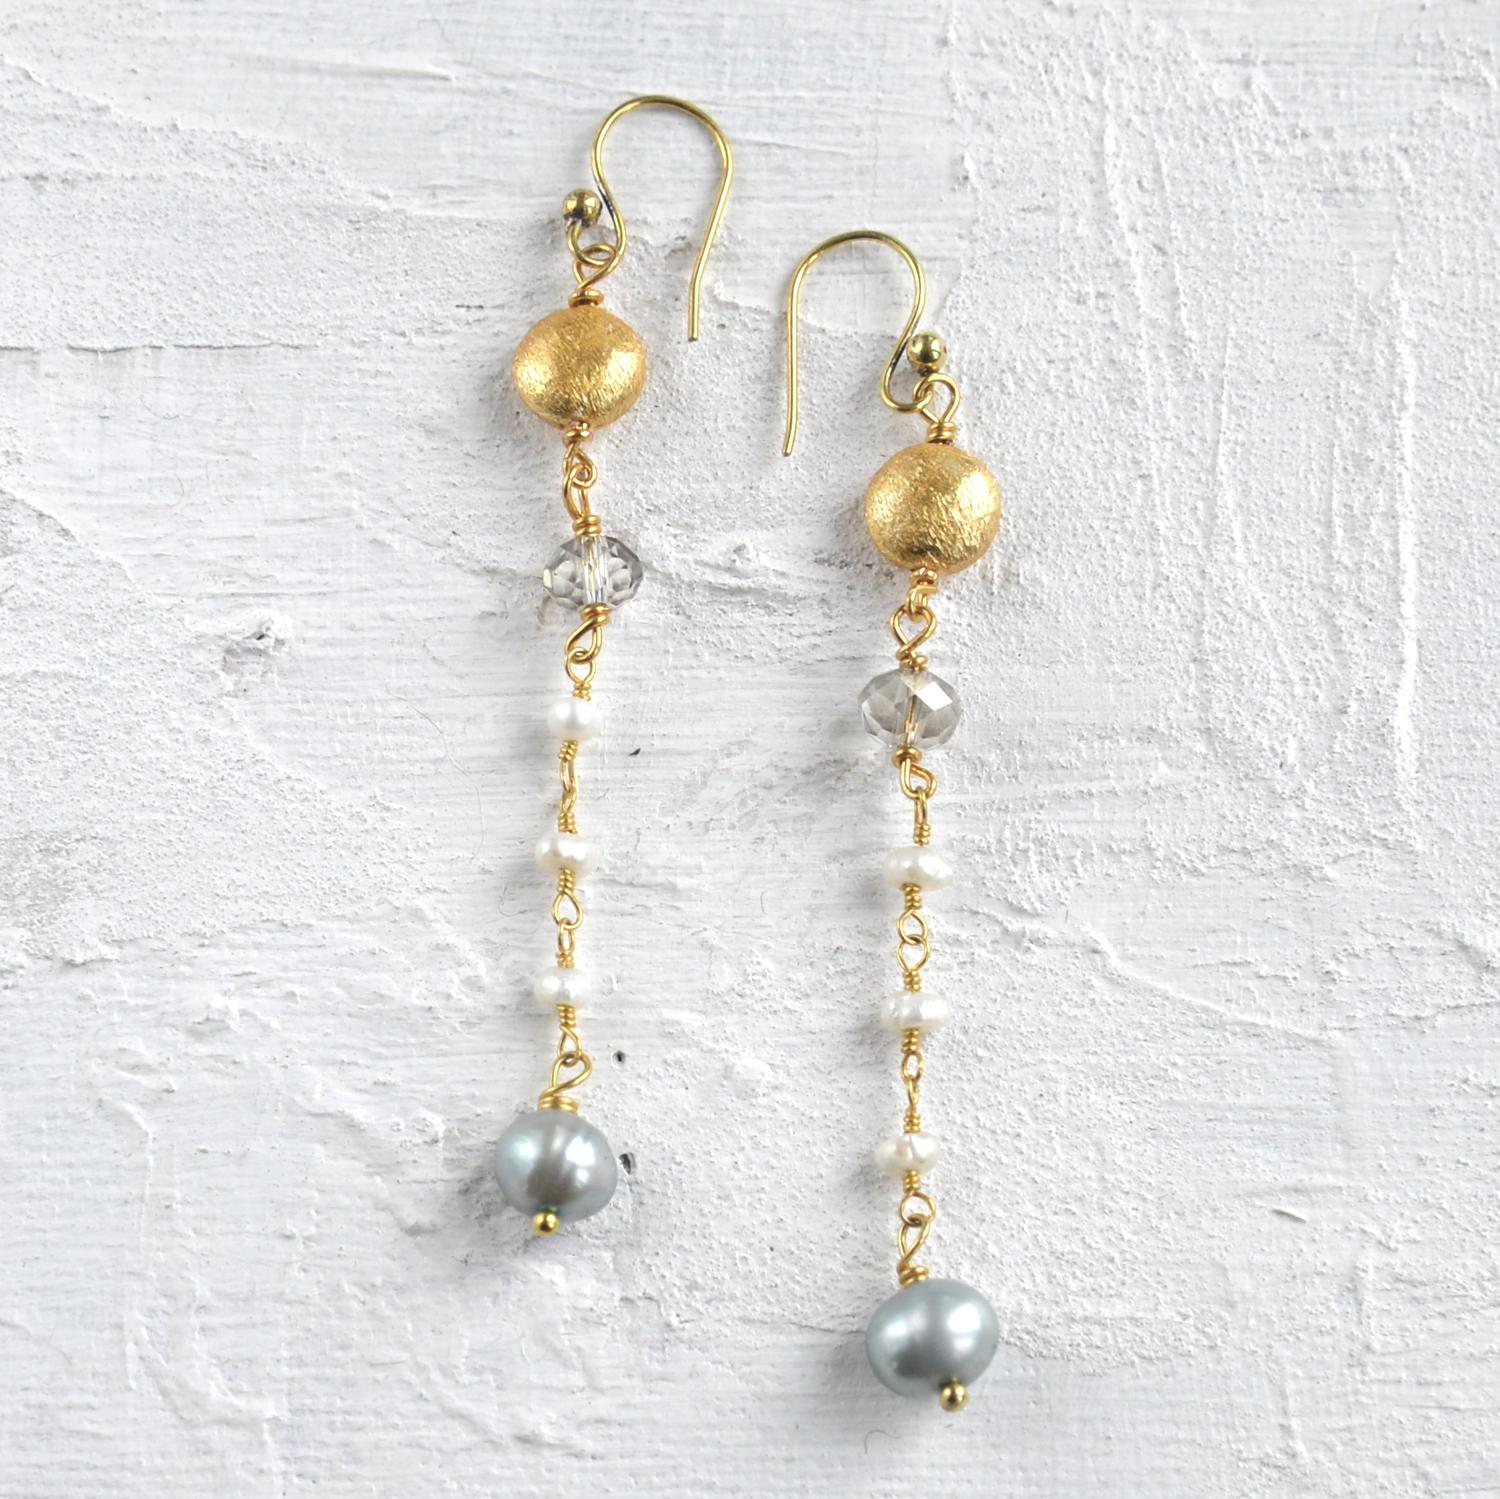 Downton pearl earrings